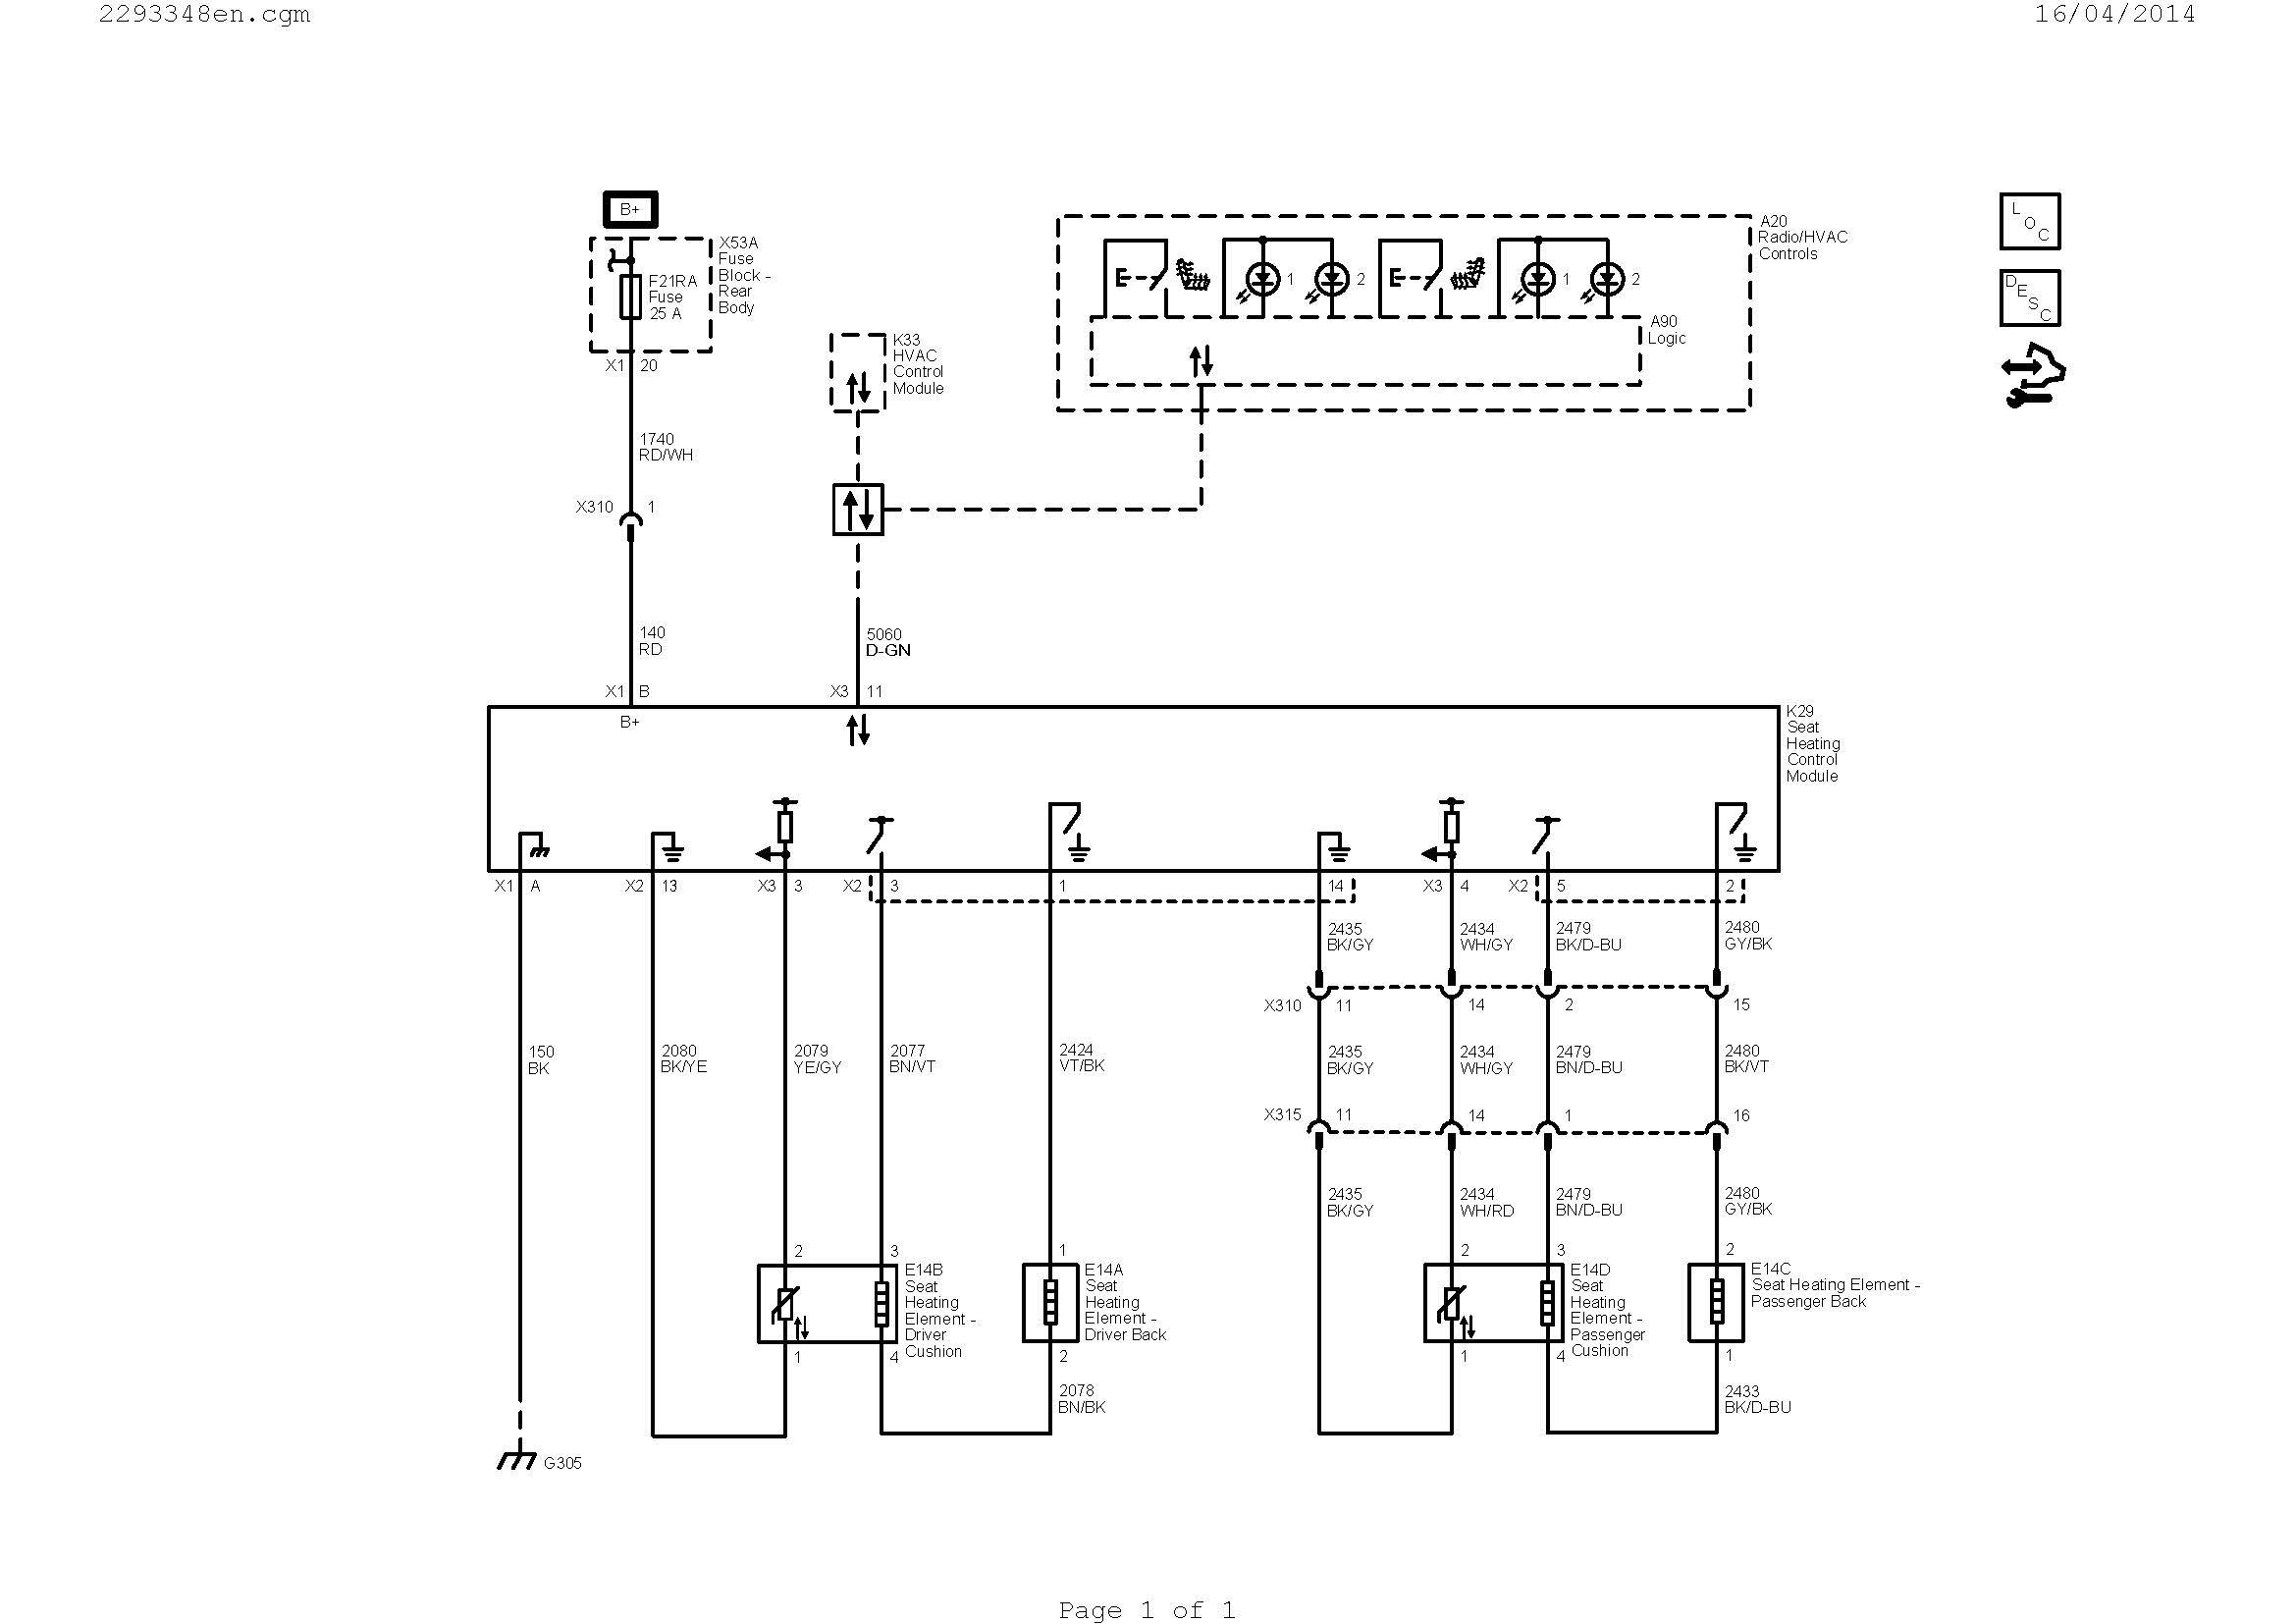 Mechanical Engineering Diagrams Hvac Diagram Best Hvac Diagram 0d – Wire Diagram Of Mechanical Engineering Diagrams